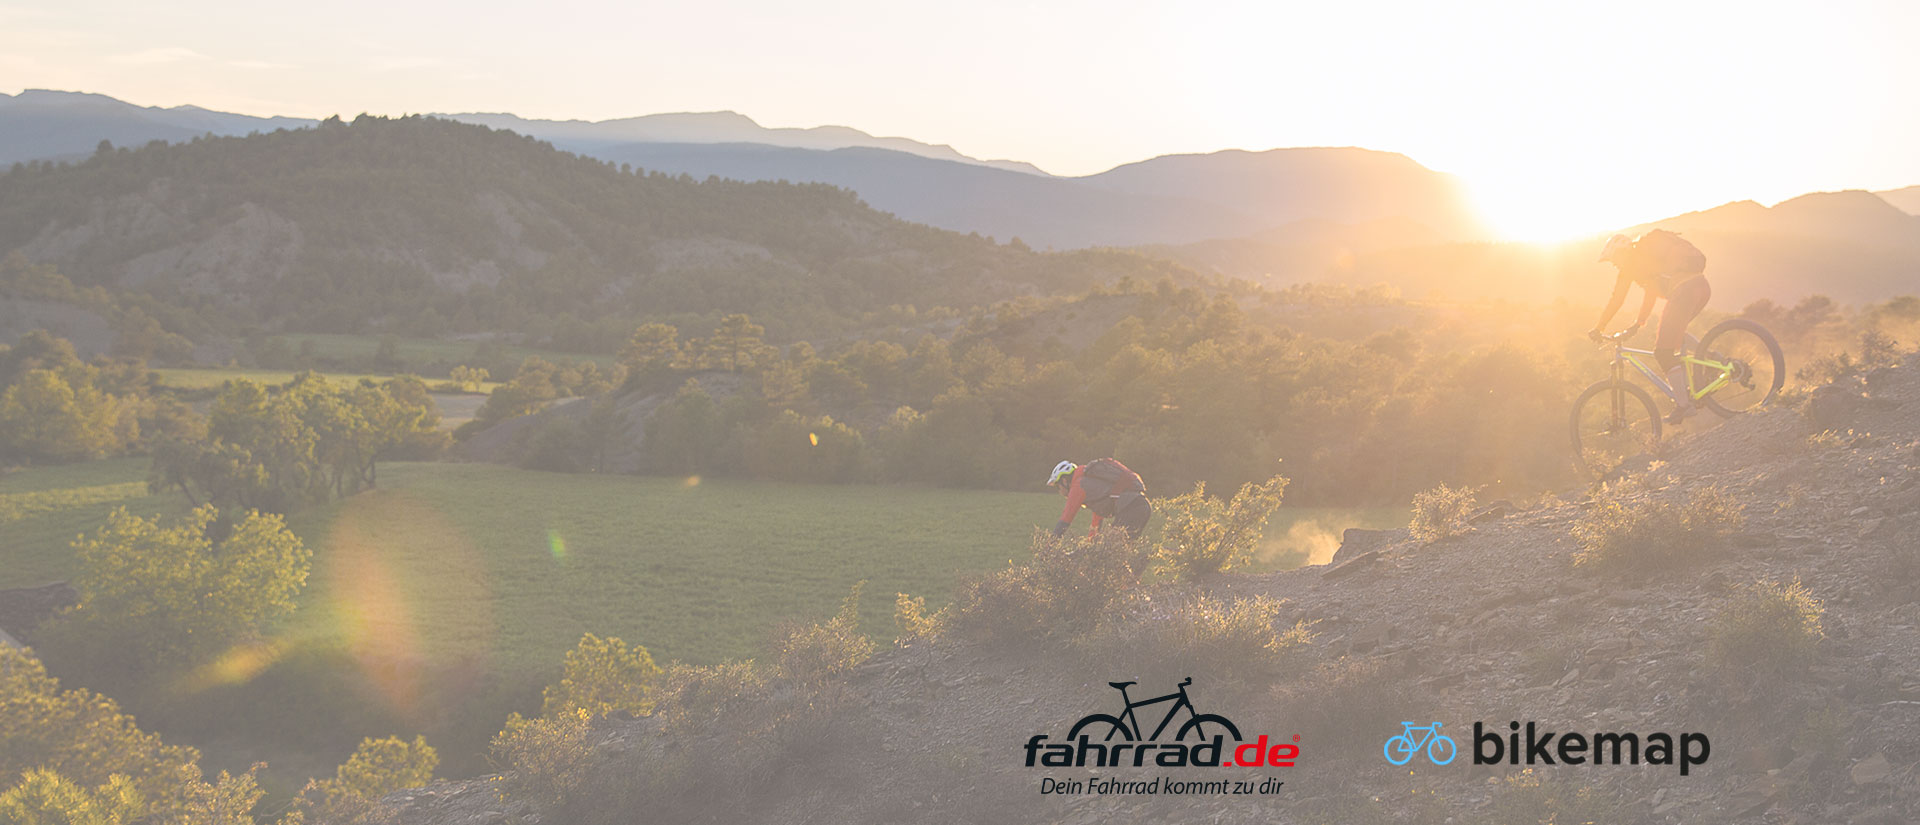 Top Fahrrad-Blogs Kategorie Mountainbike